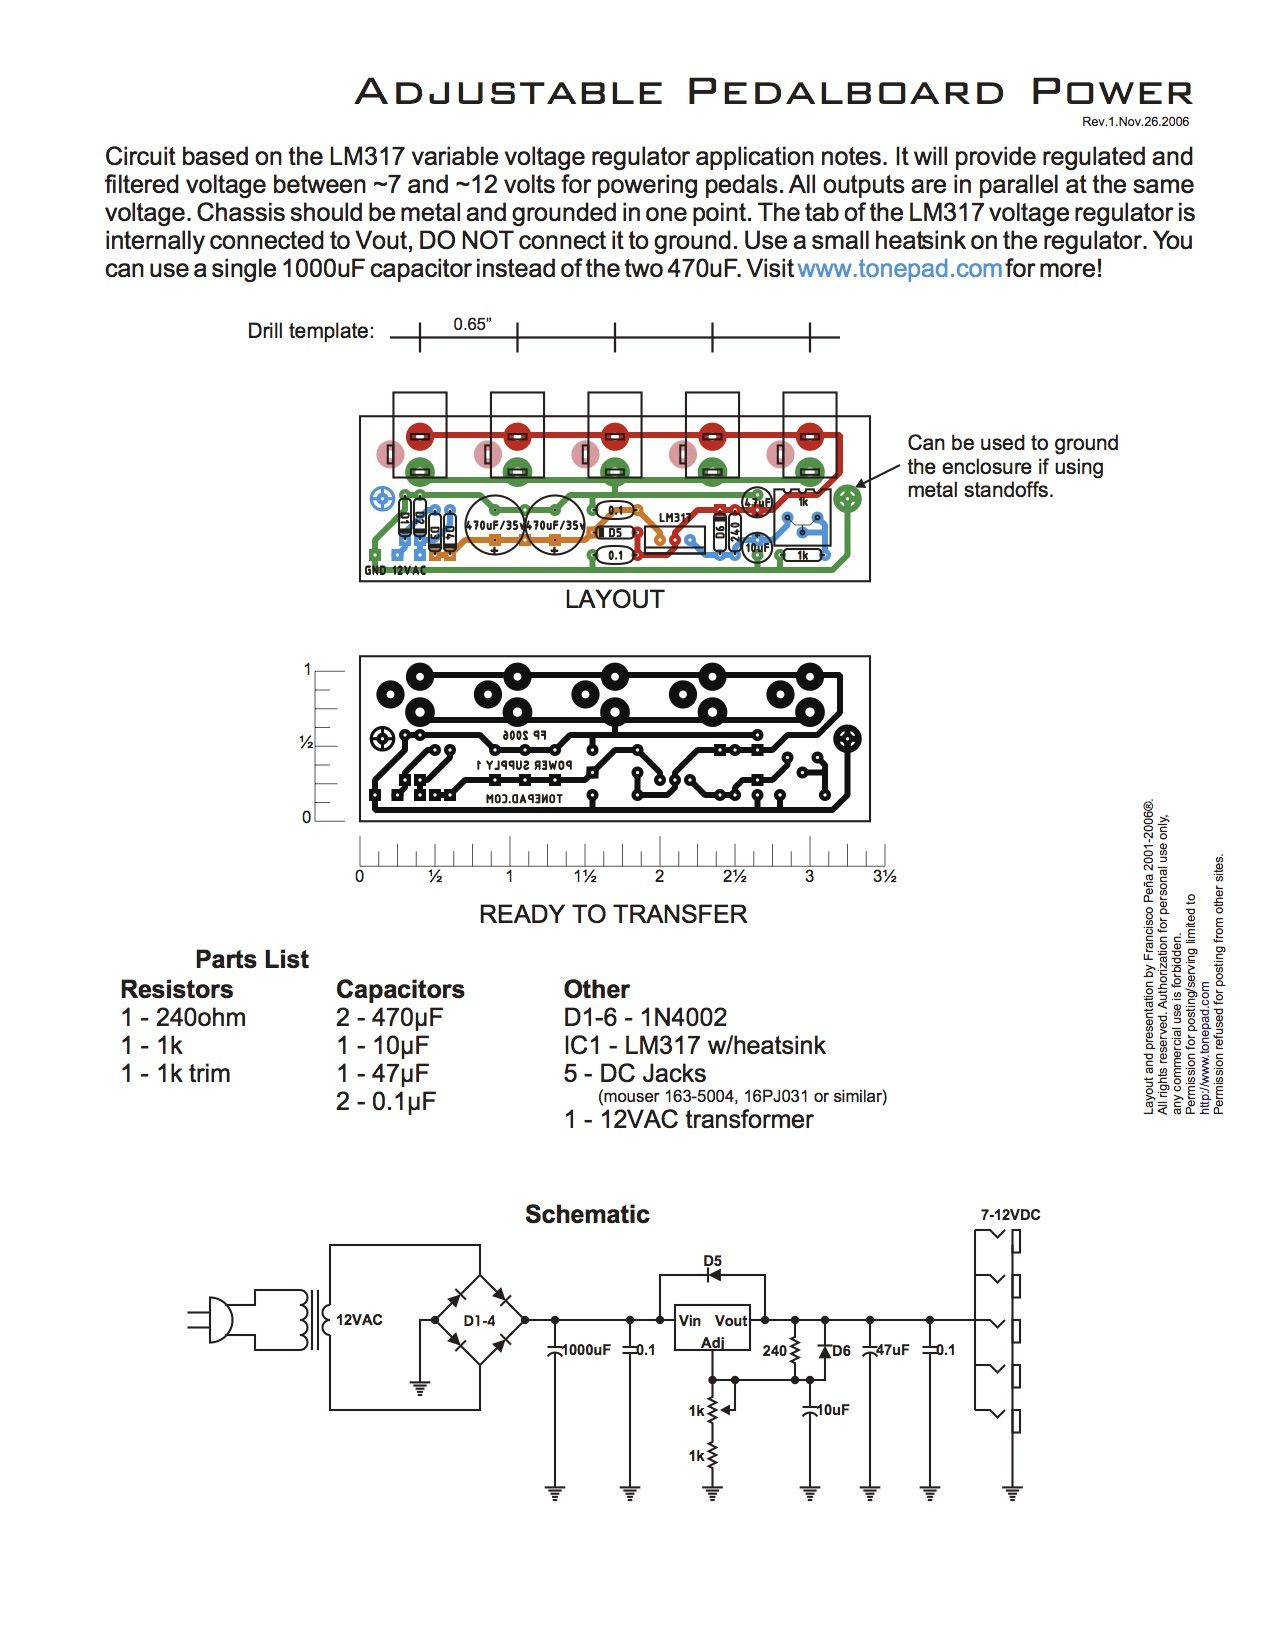 Lm317 Variable Voltage Regulator It Will Provide Regulated And 12 Volt Circuit Diagram Also Filtered Between 7 Volts For Powering Pedals